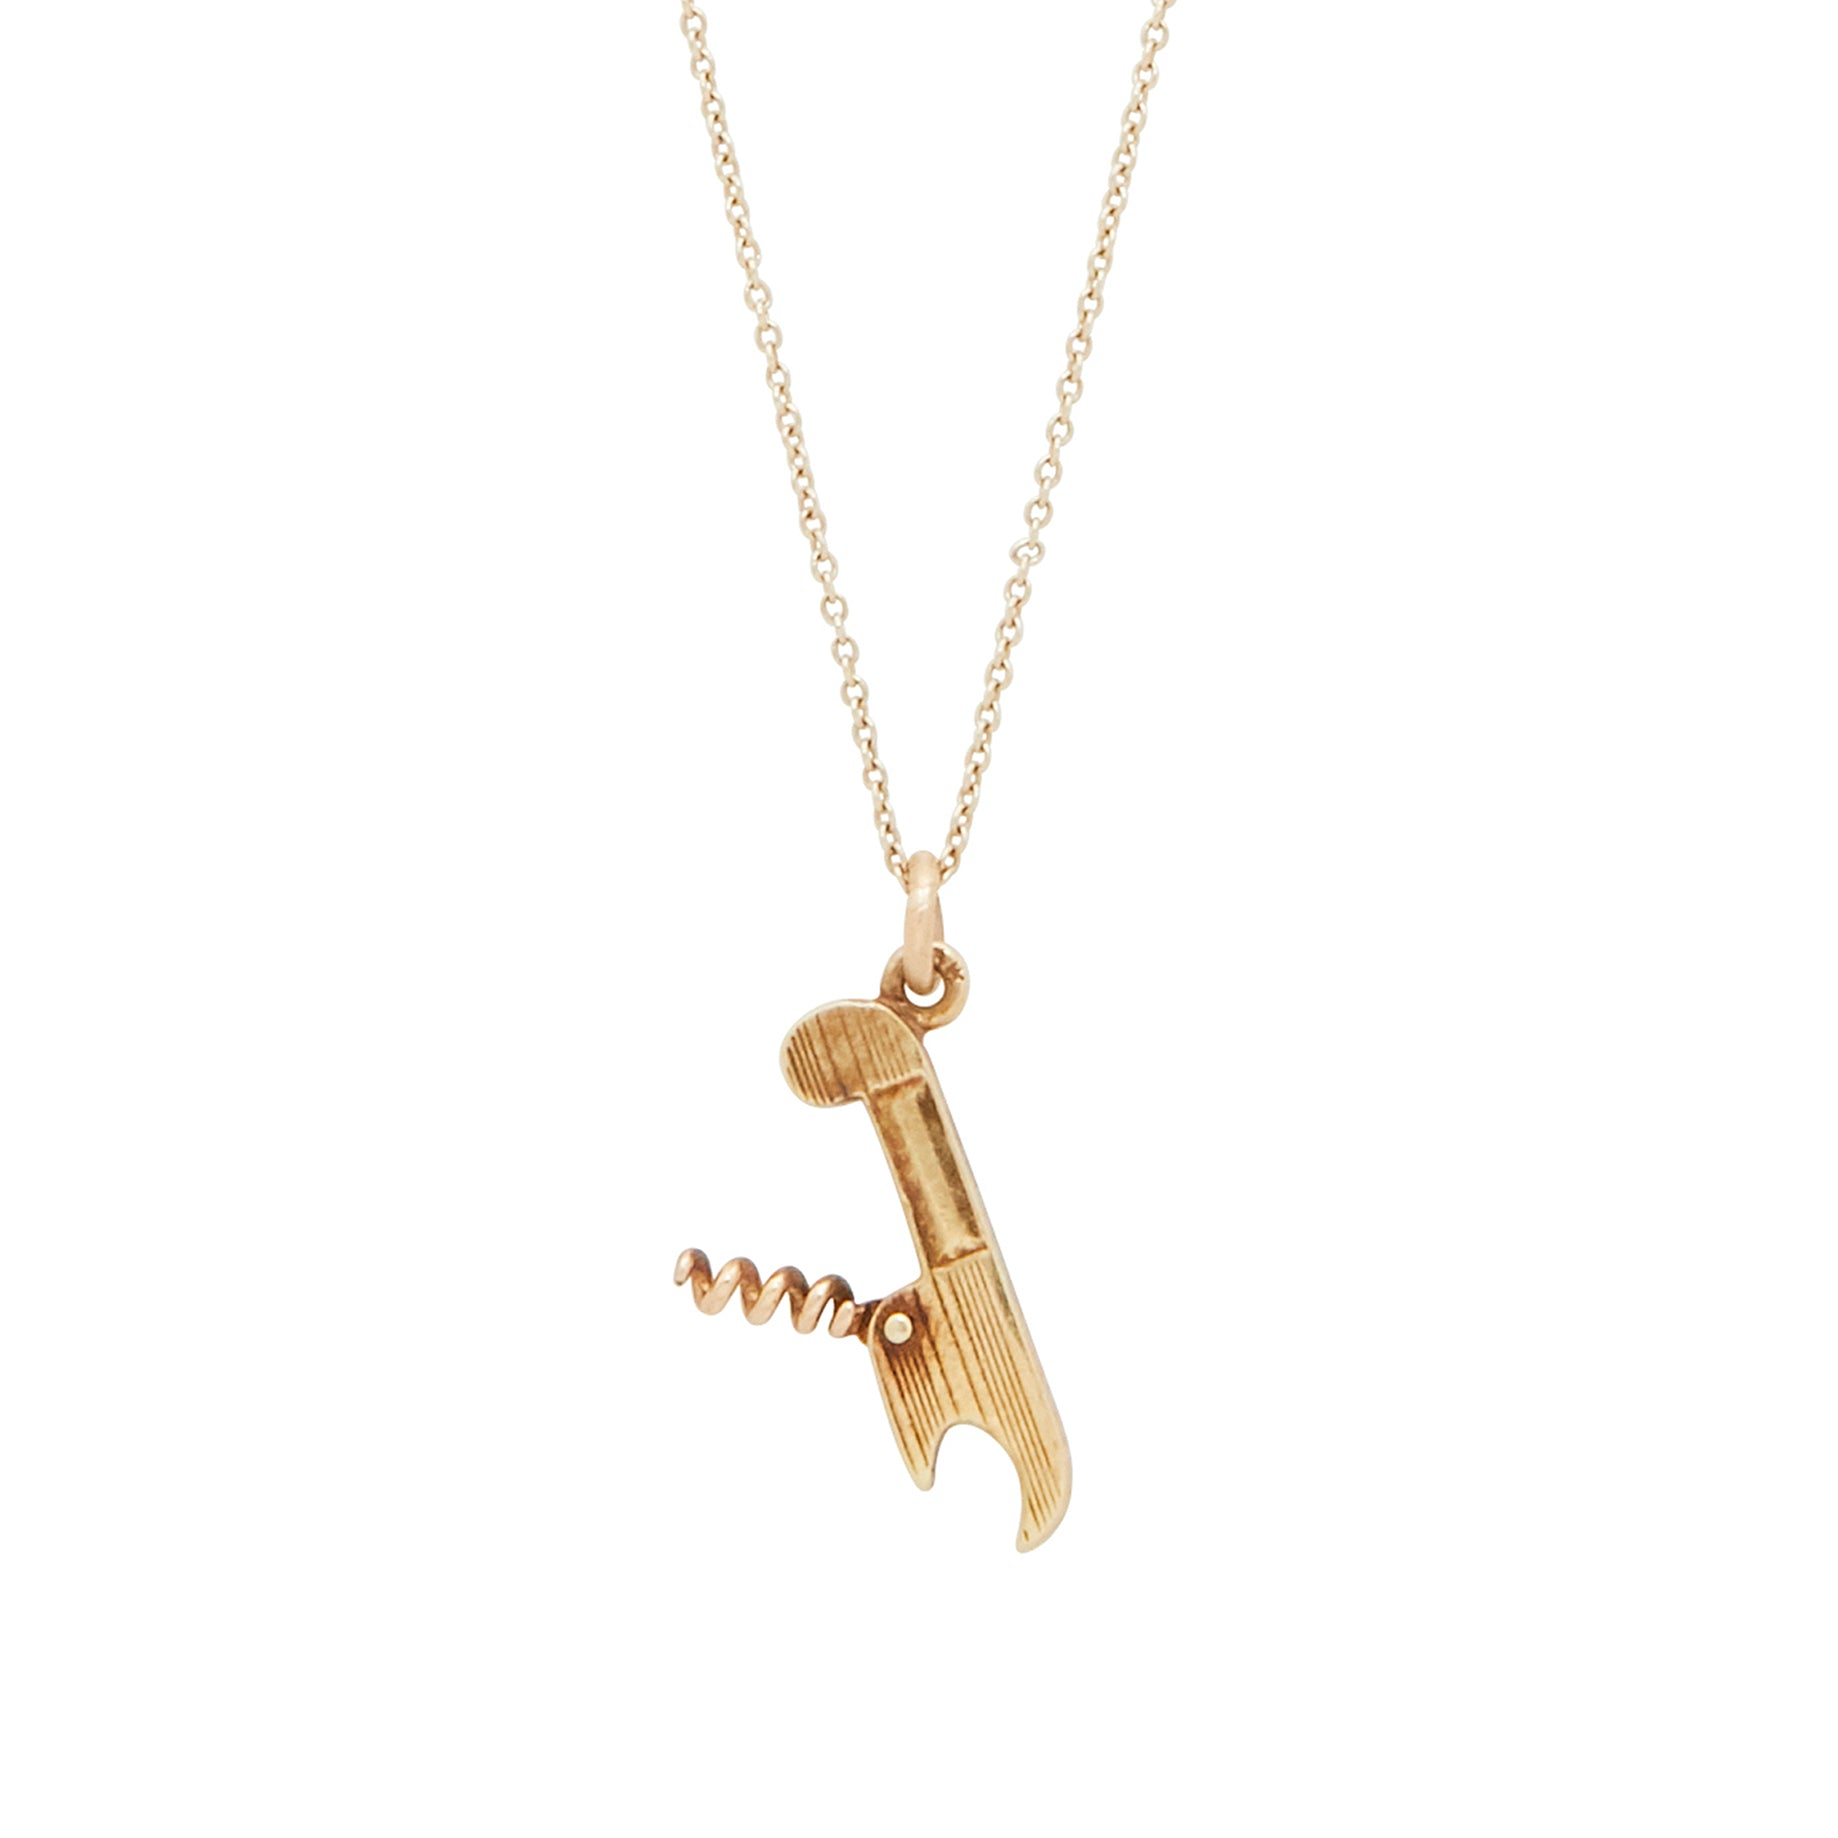 Movable 14k Gold Corkscrew Charm